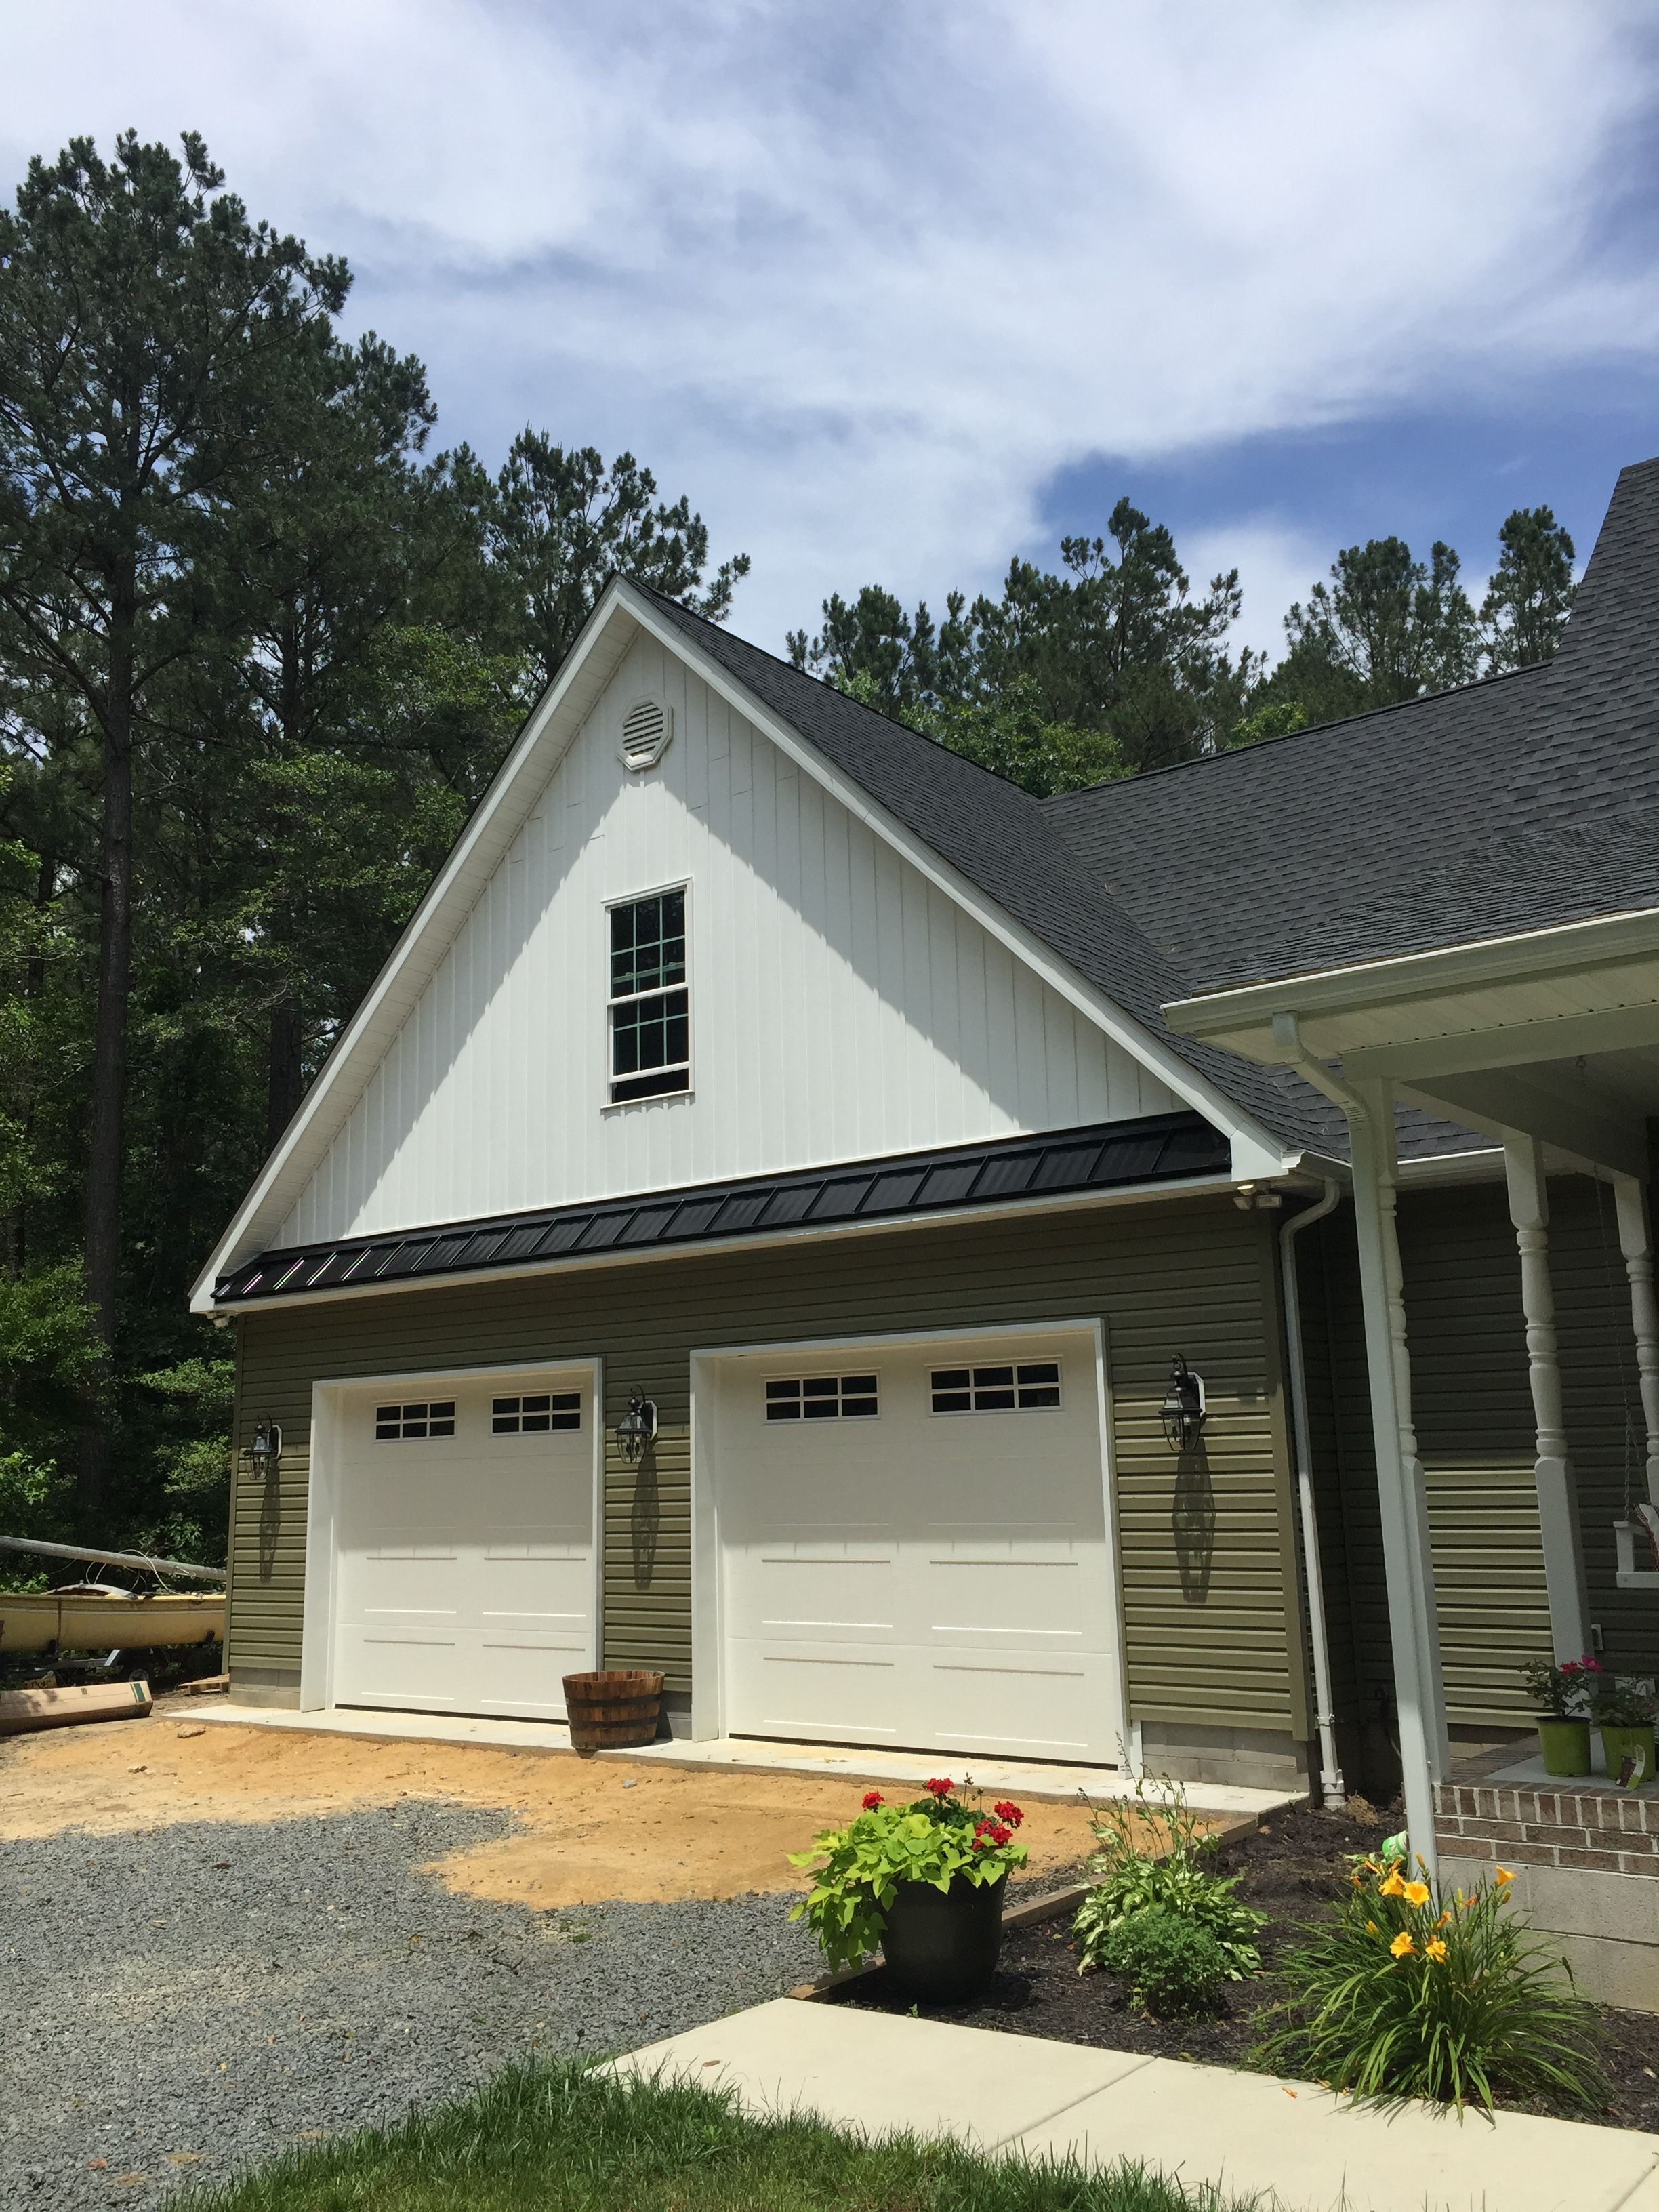 A 30x30 Garage Addition With A Bonus Room Above Accessed By The Existing Second Story 10x8 Garage Doors Sta Garage Addition Room Above Garage House Exterior